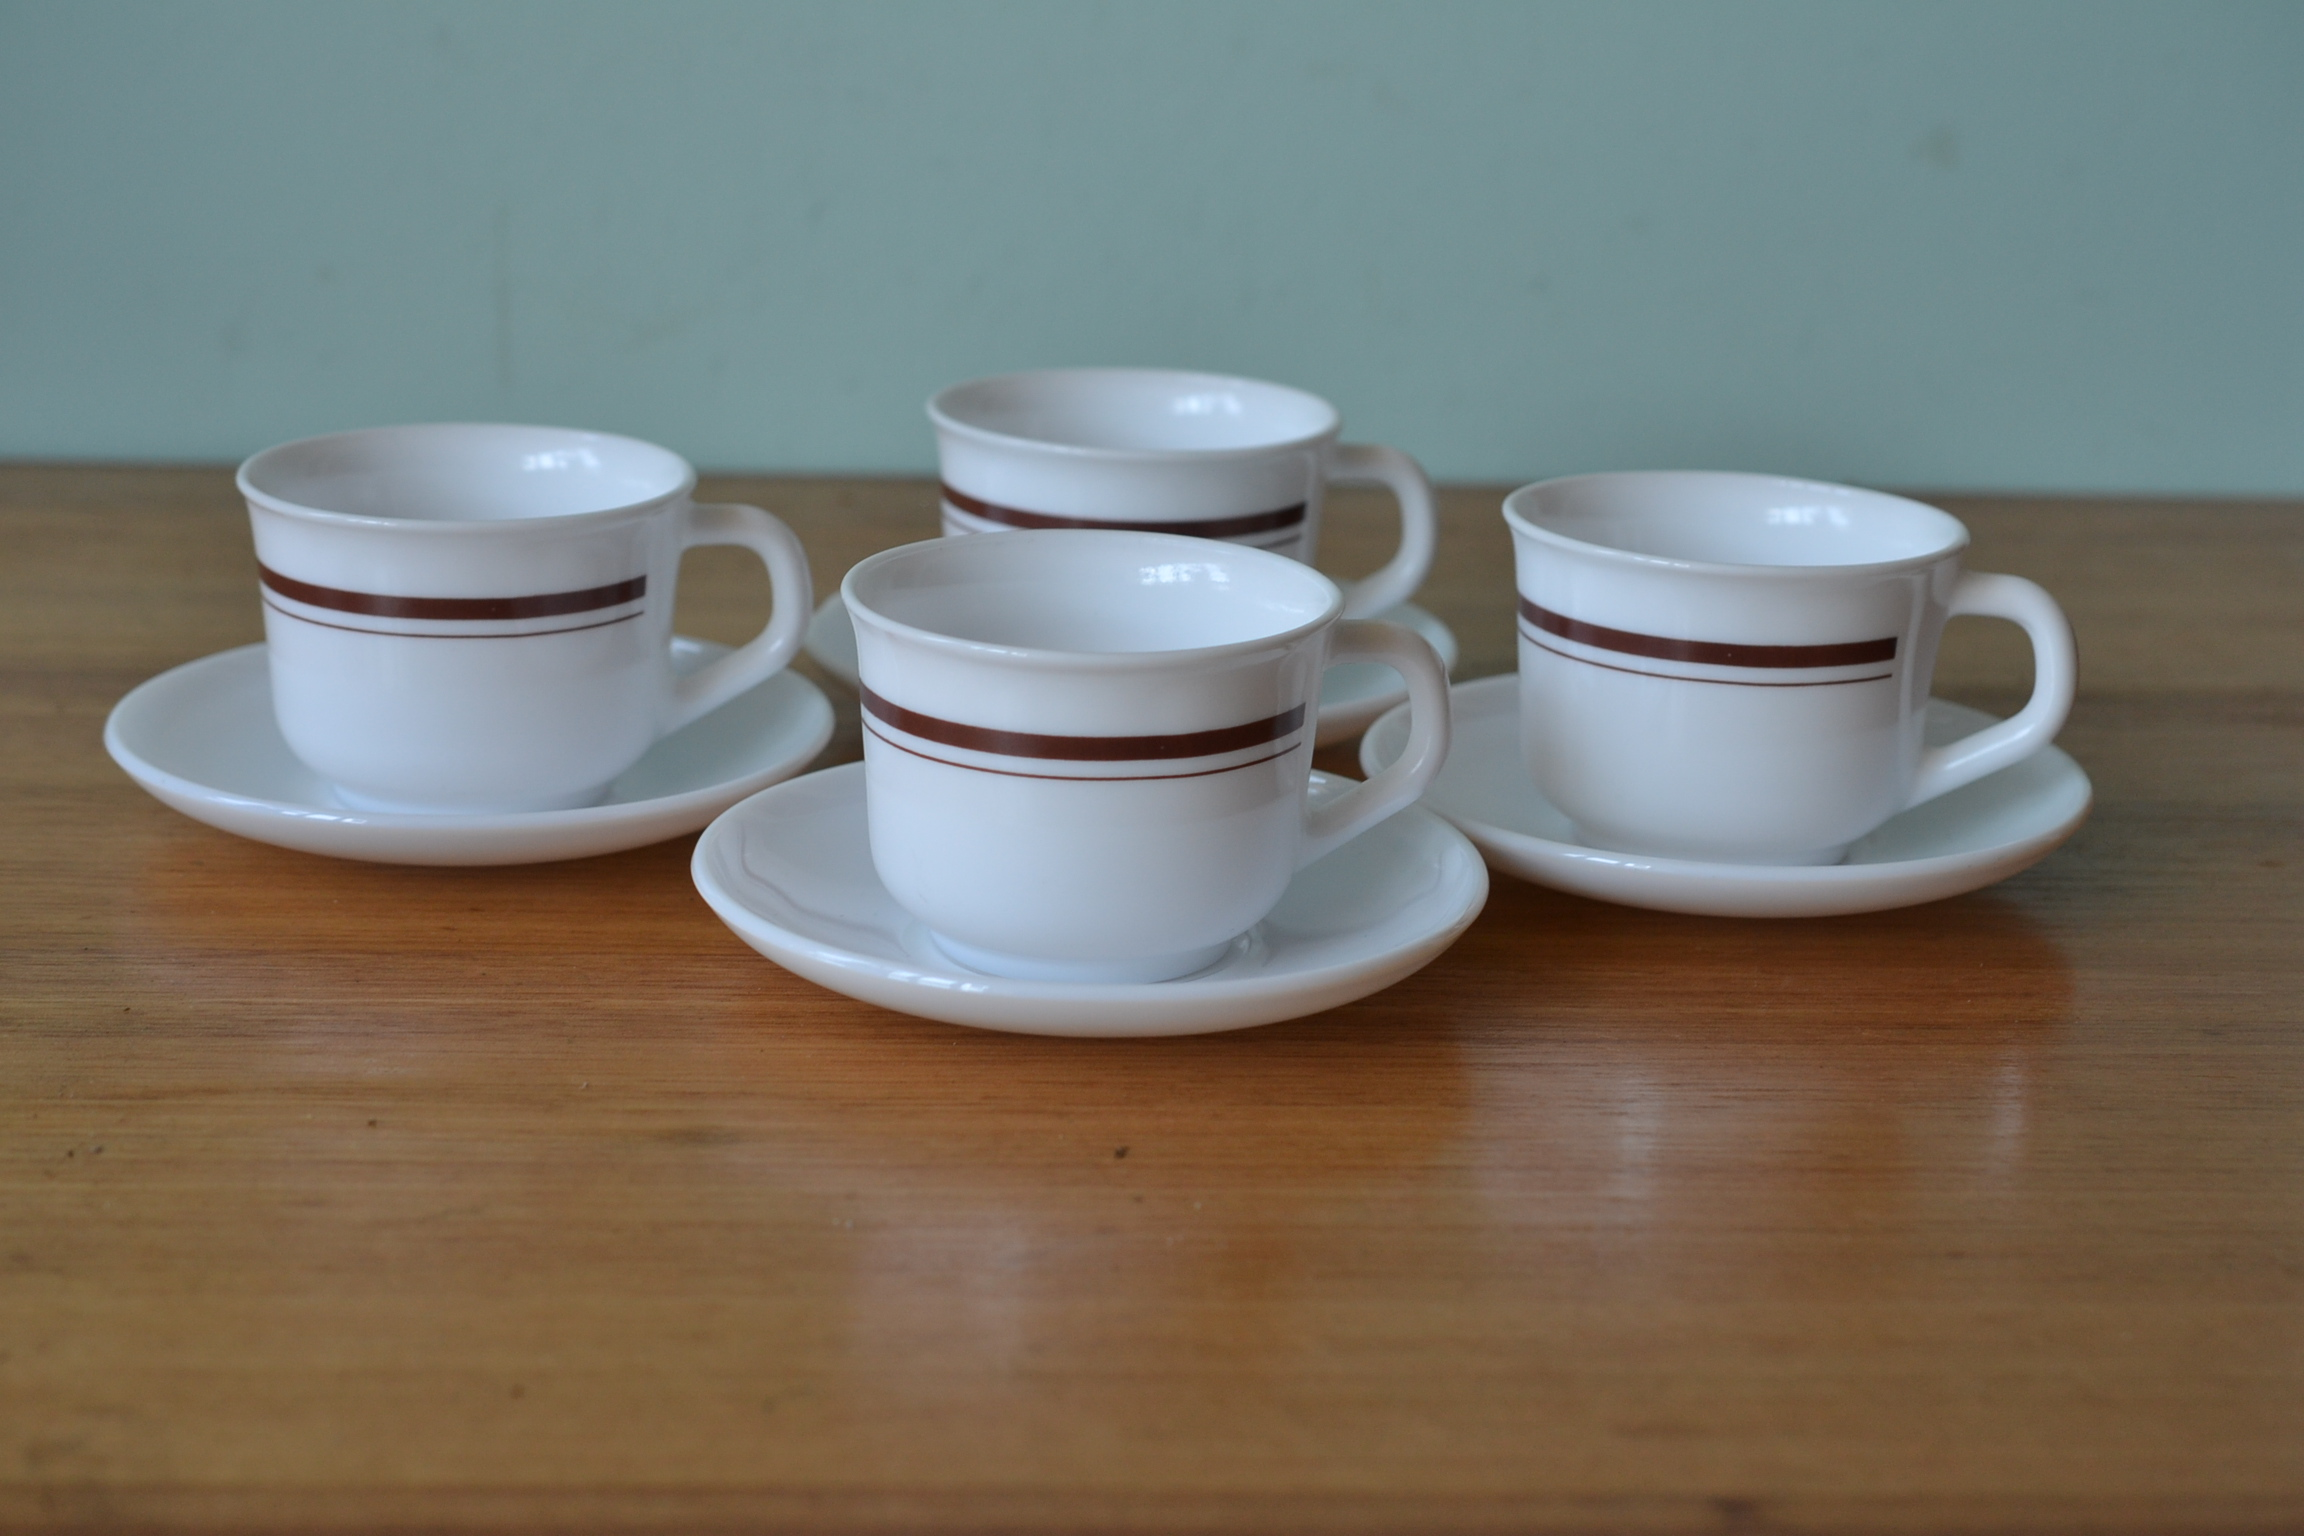 Vintage Acropal Set Teacups Coffee Cups Saucers Made